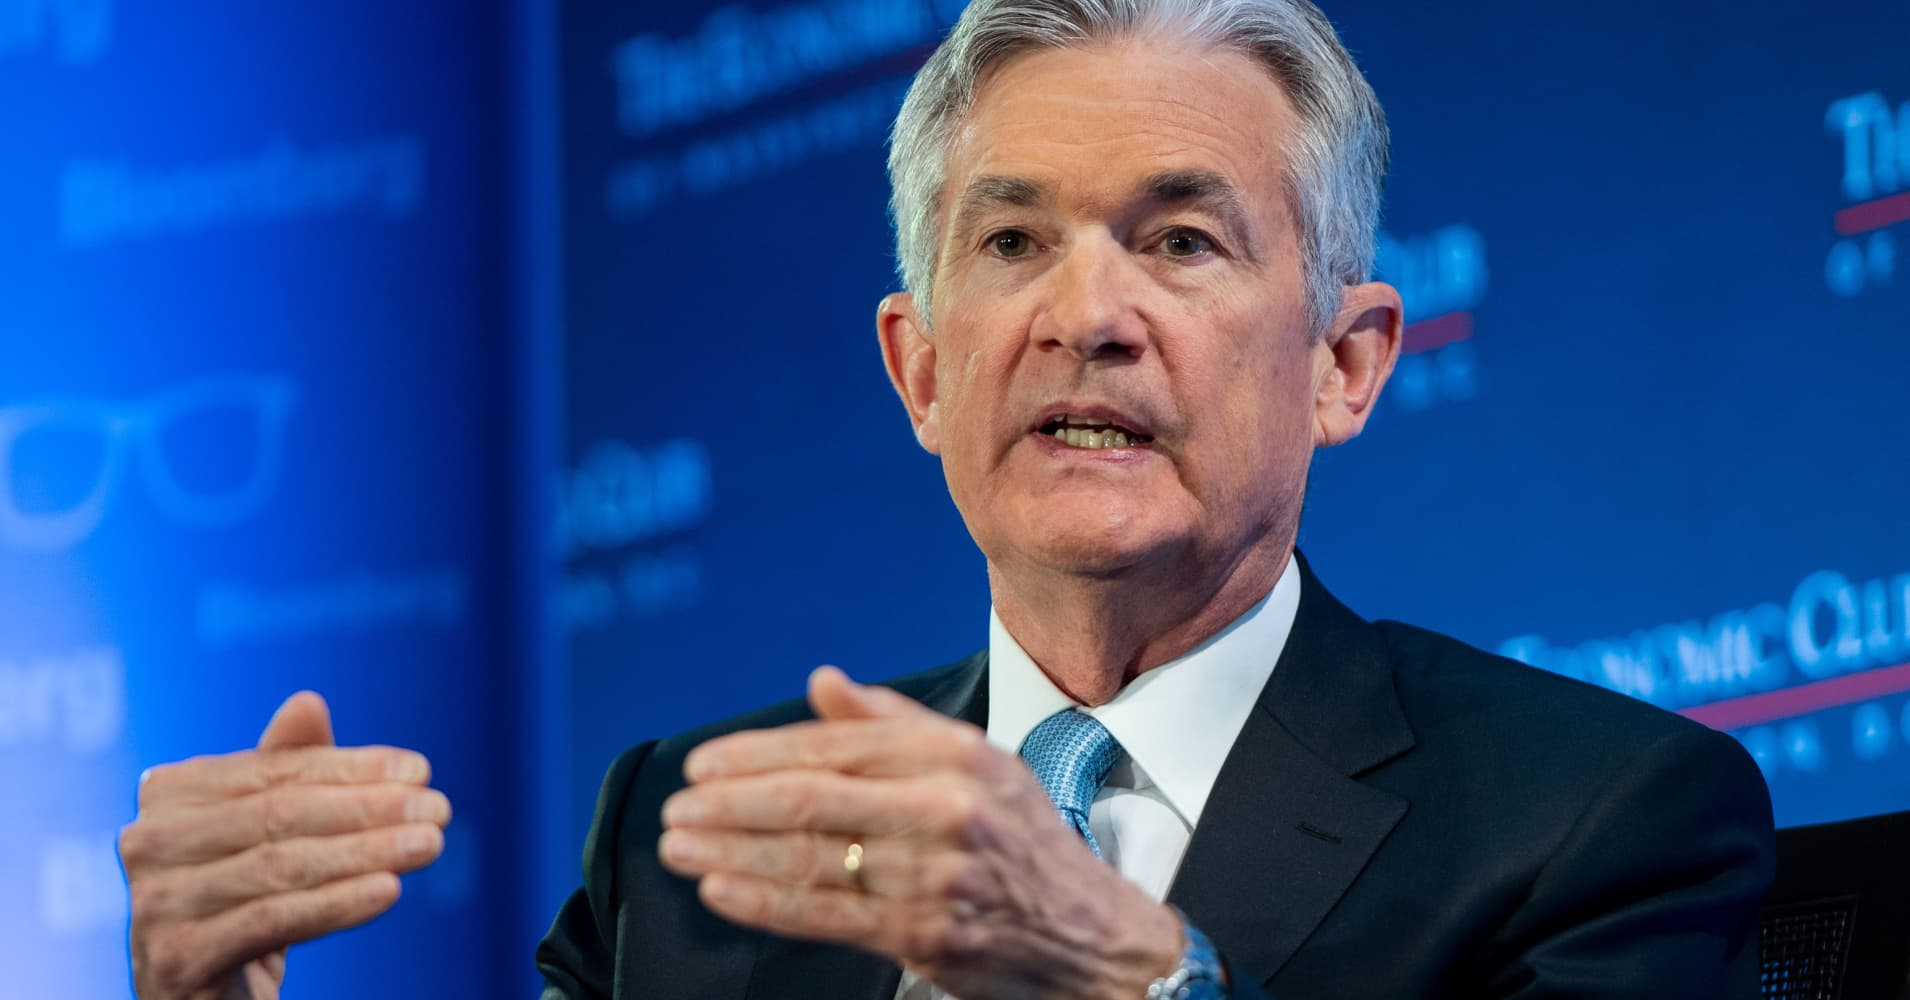 Fed Chairman Powell says he is 'very worried' about growing amount of U.S. debt